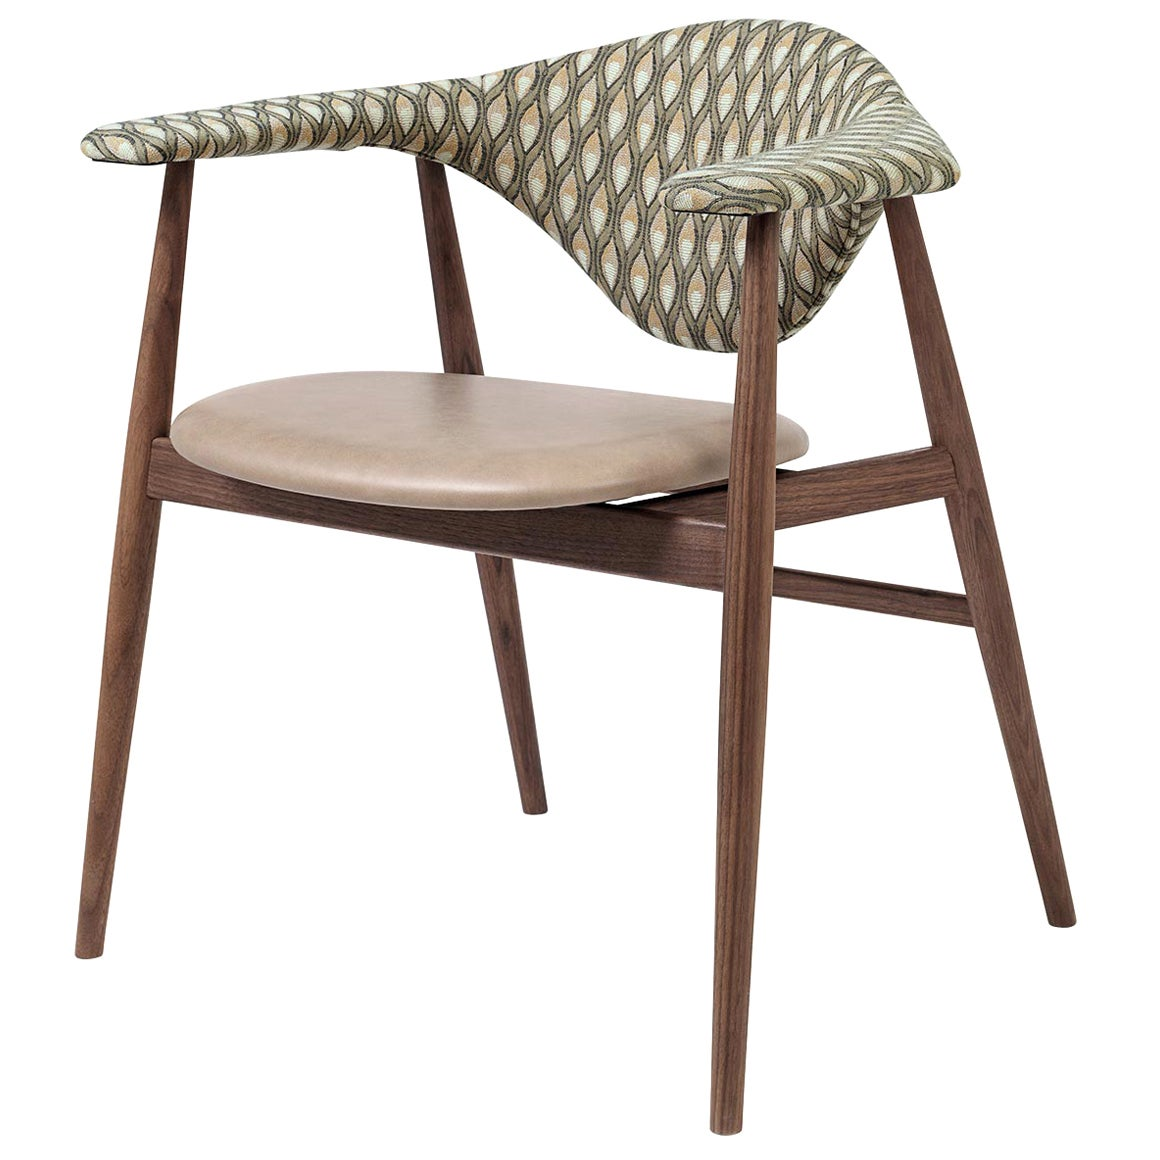 Masculo Dining Chair, Fully Upholstered, Smoked Oak Base